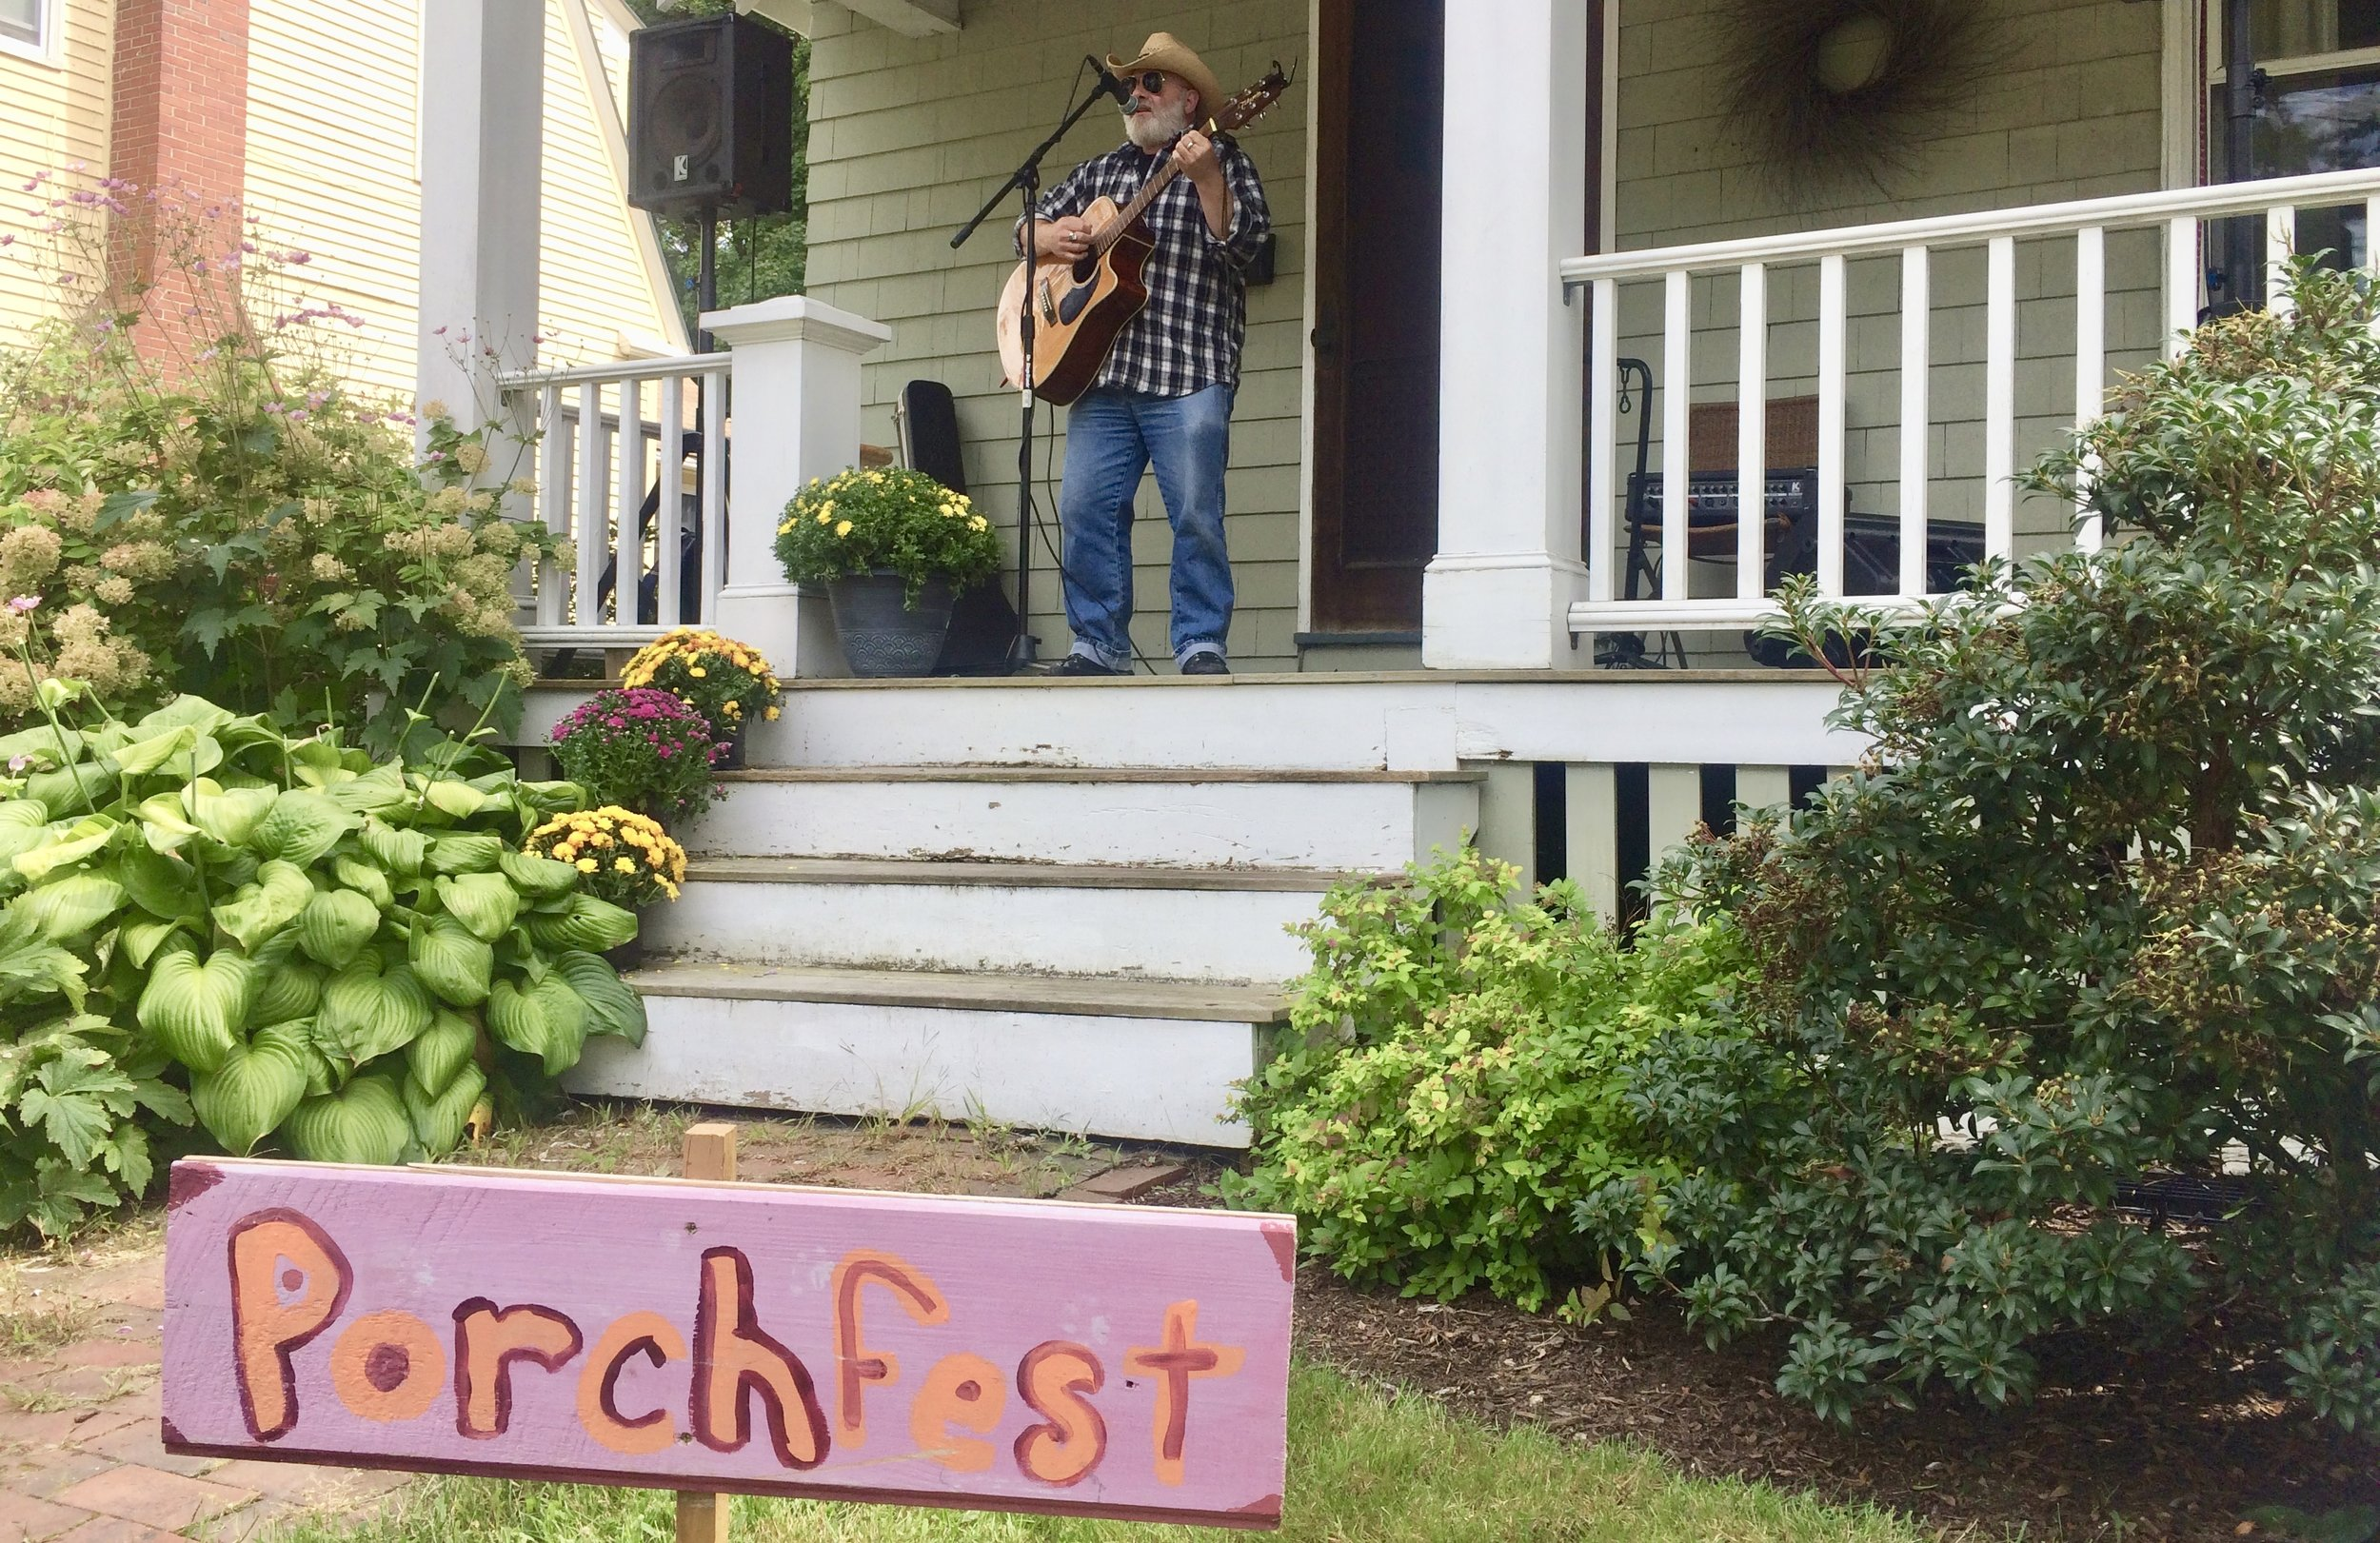 Porchfest! - Our wonderful free music festival on porches and yards throughout the neighborhood